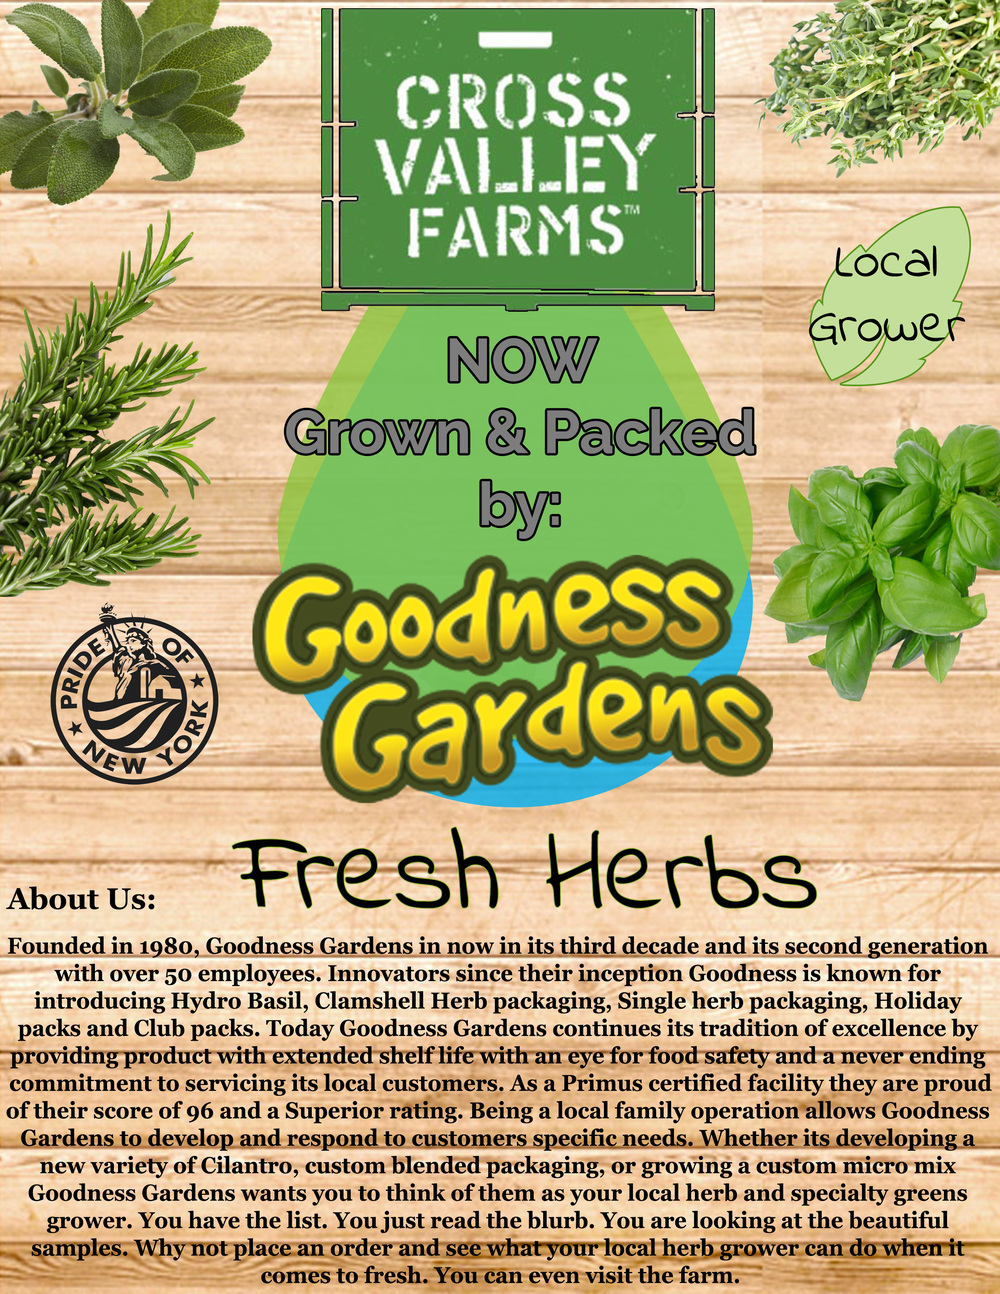 POS Goodness Gardens crossvalleyfarms.jpg